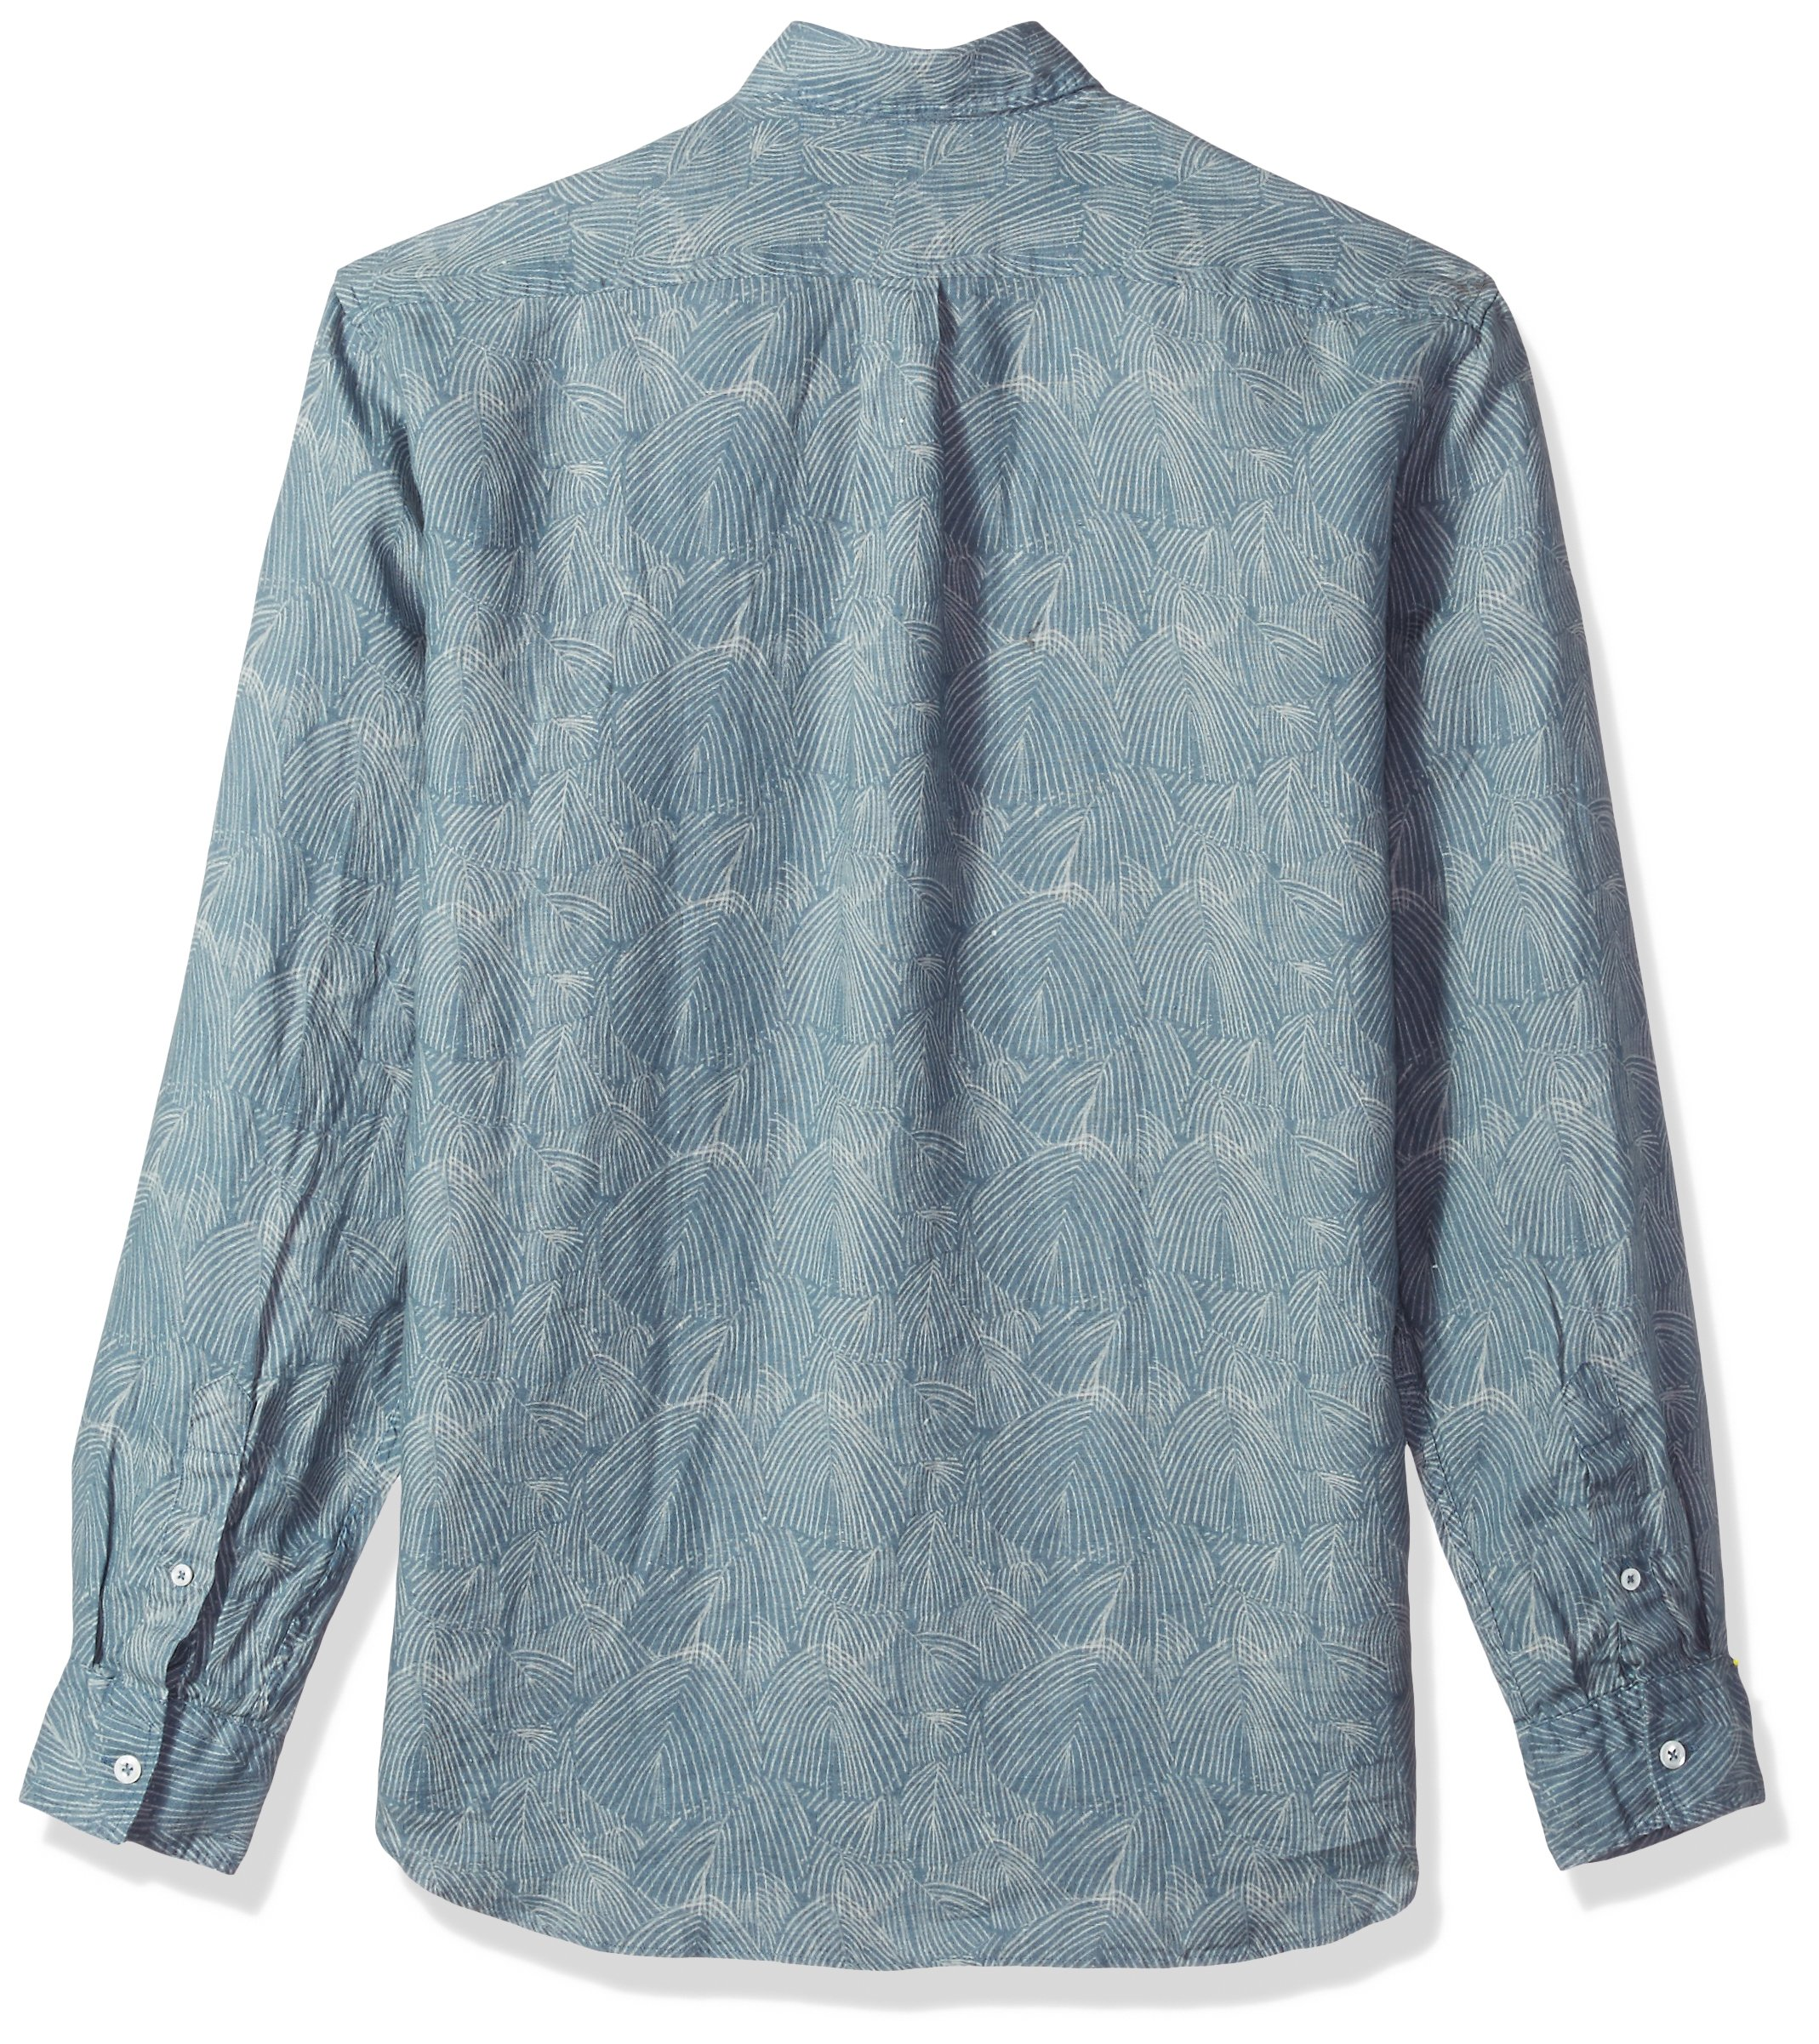 Billy Reid Men's Standard Fit Button Down Tuscumbia Shirt, Teal Willow M by Billy Reid (Image #2)